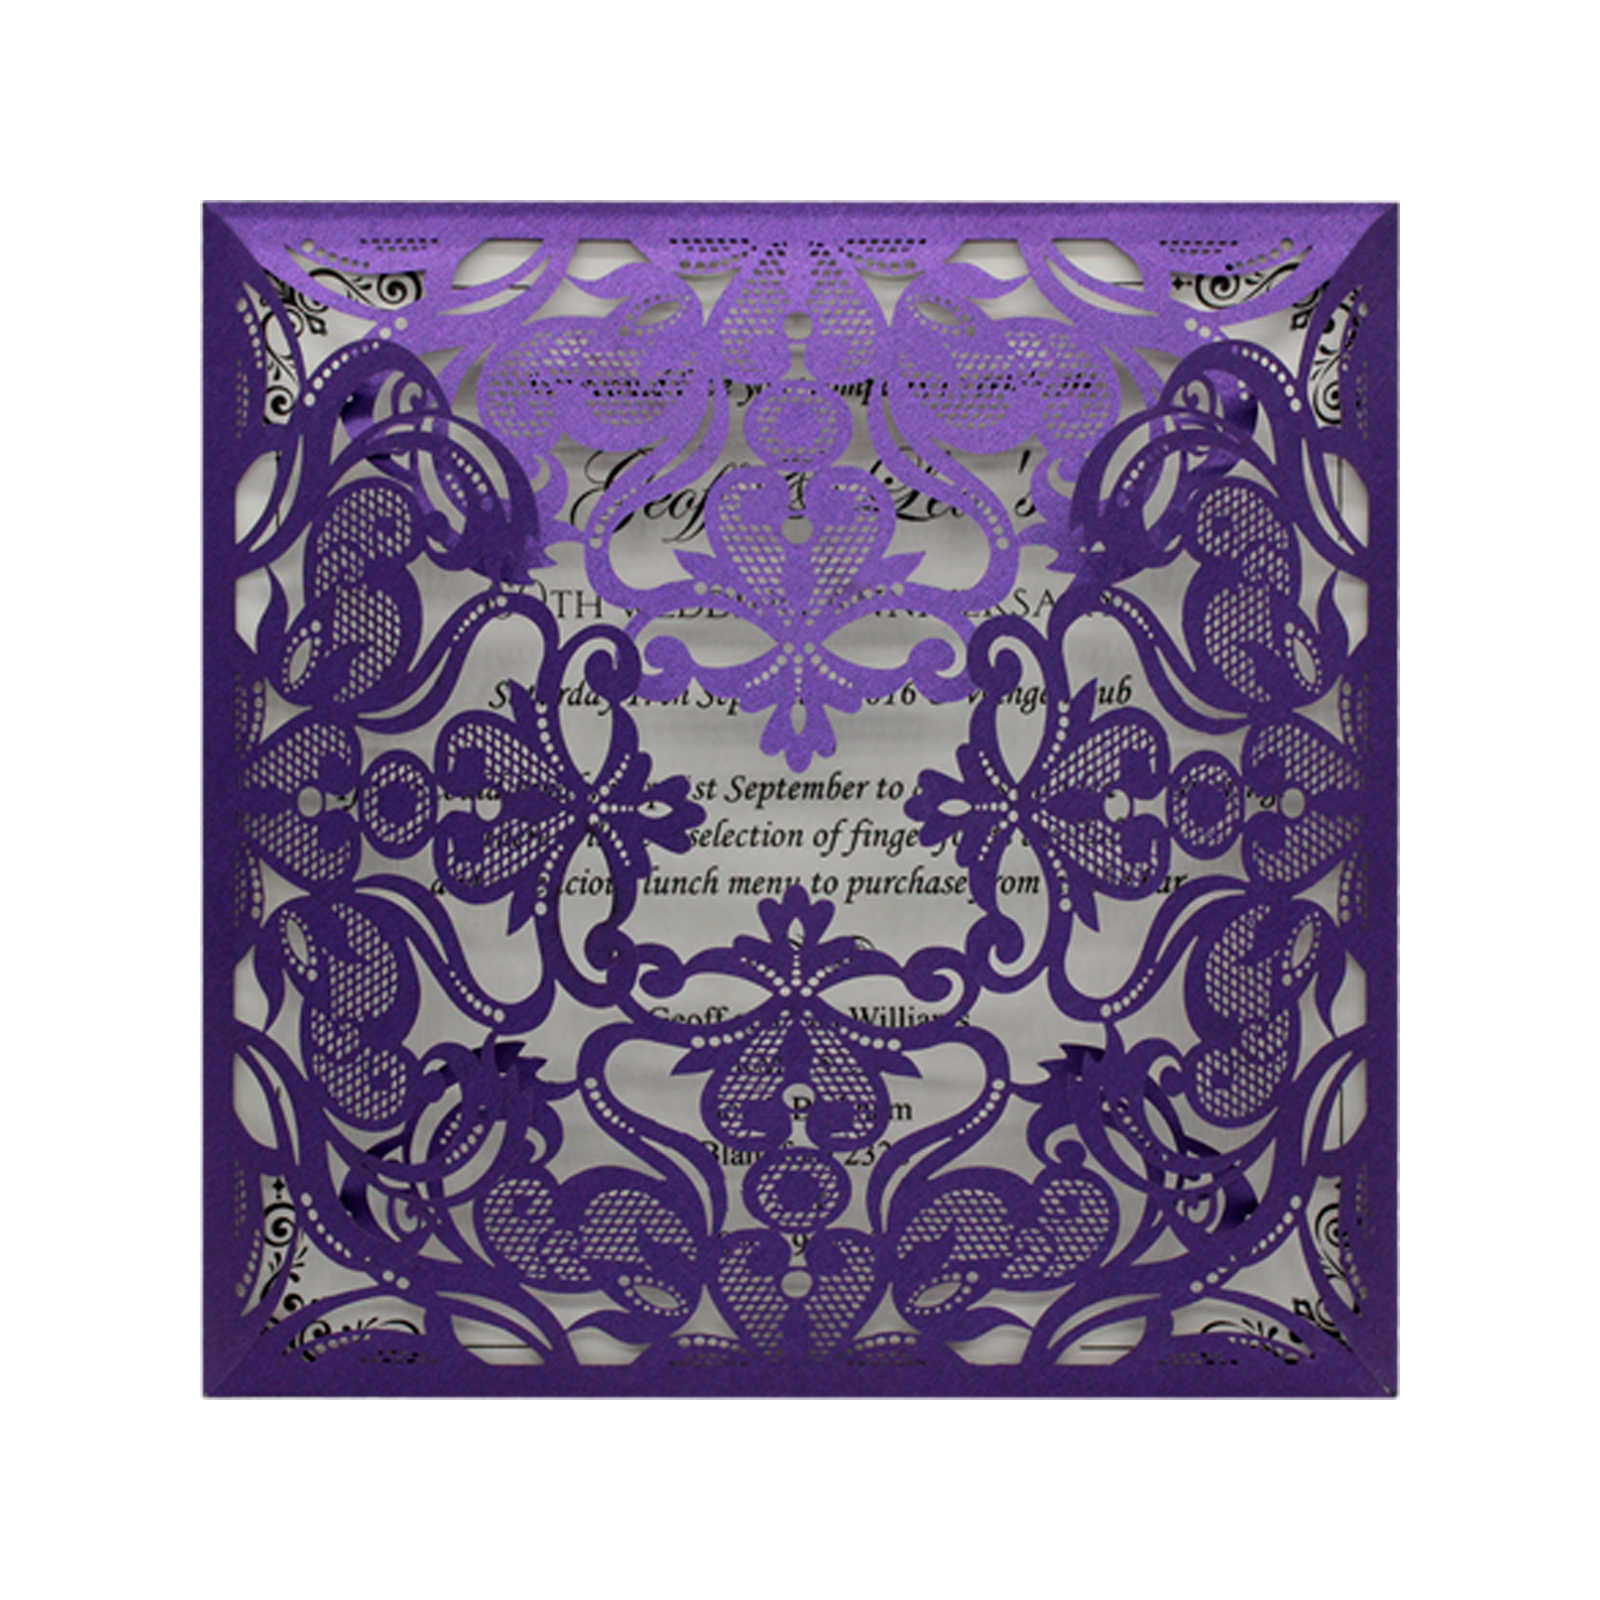 10 Kits Purple Elegant Laser Cut Wedding Invitation Cards Greeting Card Customize Business With Rsvp Cards Decor Party Supplies